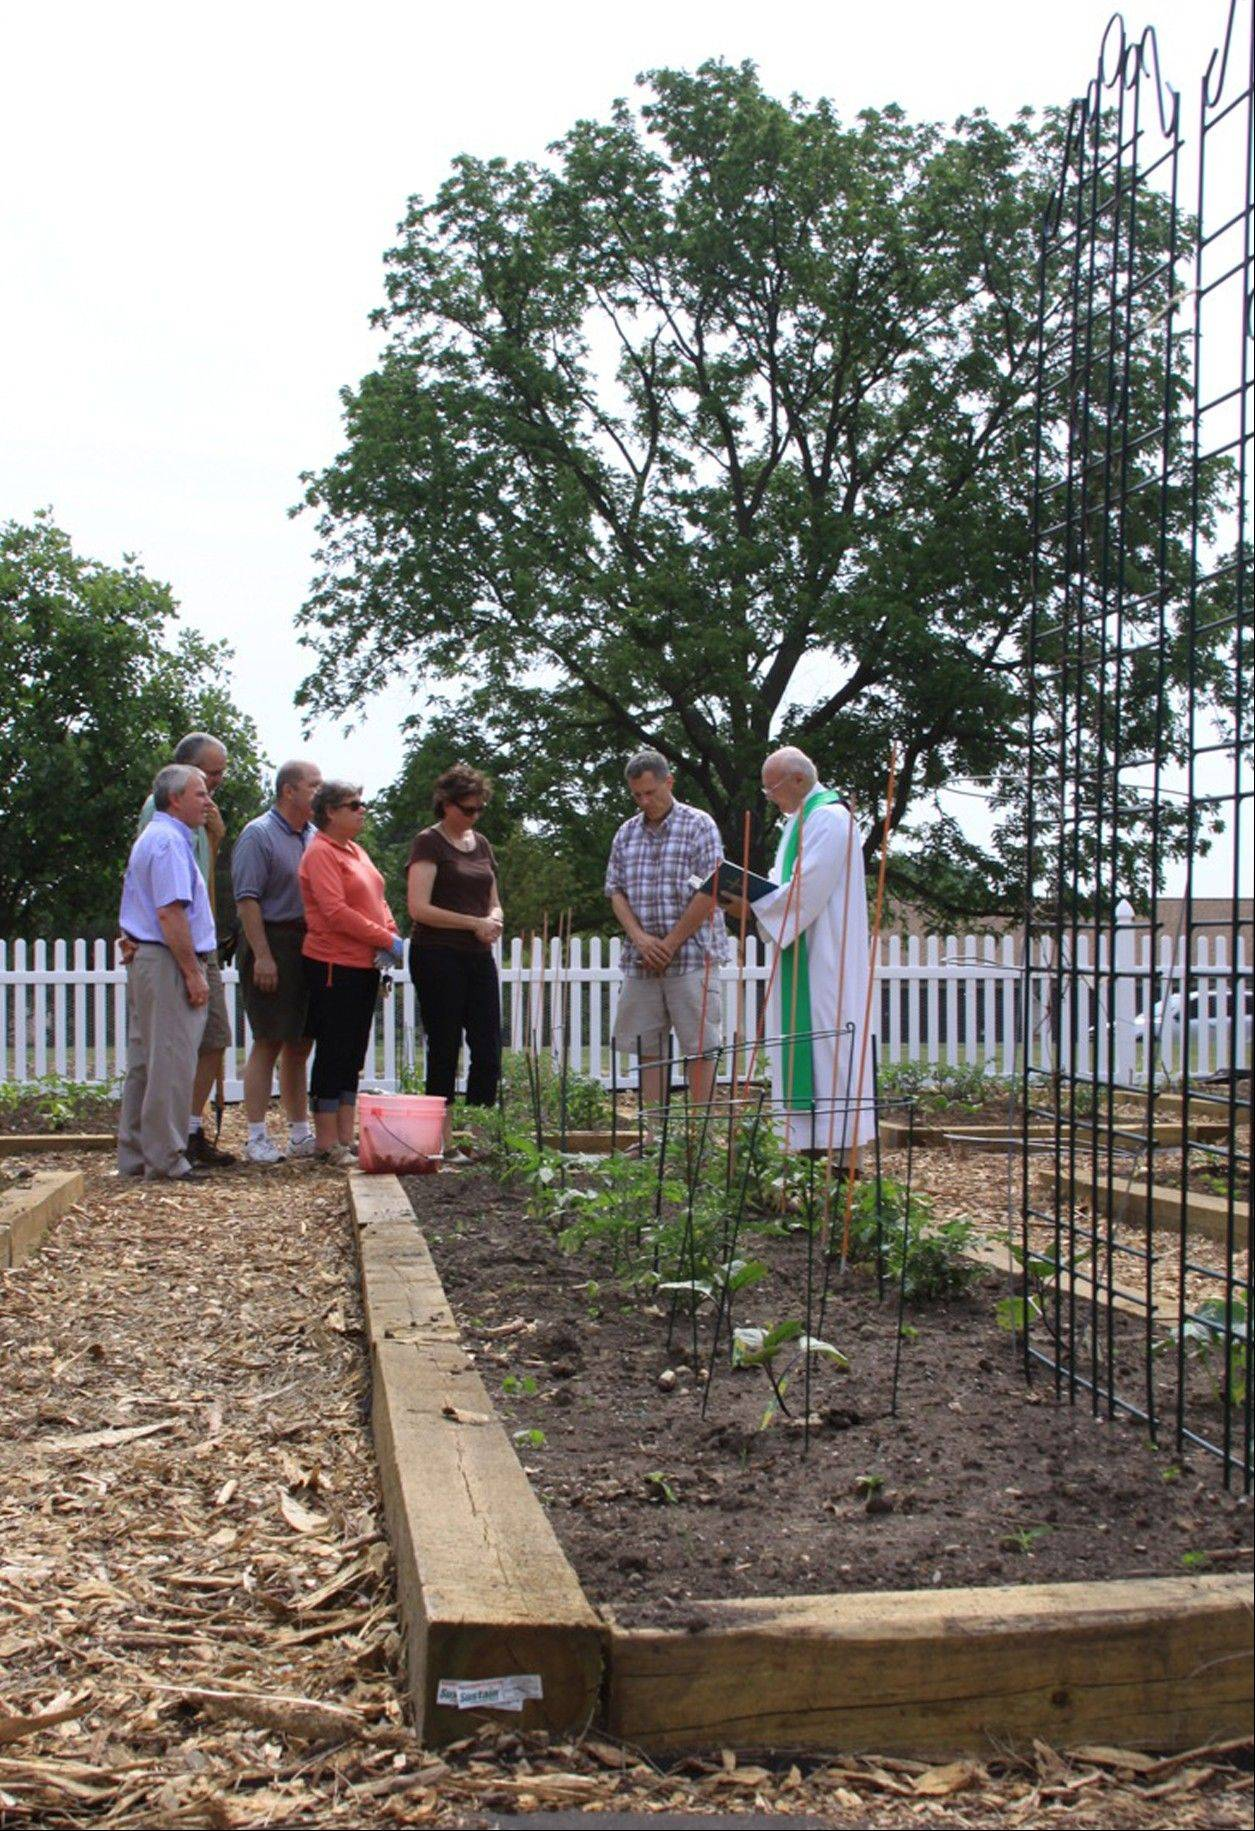 The Rev. Dan Hall of the Clerics of St. Viator, gathers some of the gardeners for a blessing of their garden and their efforts.